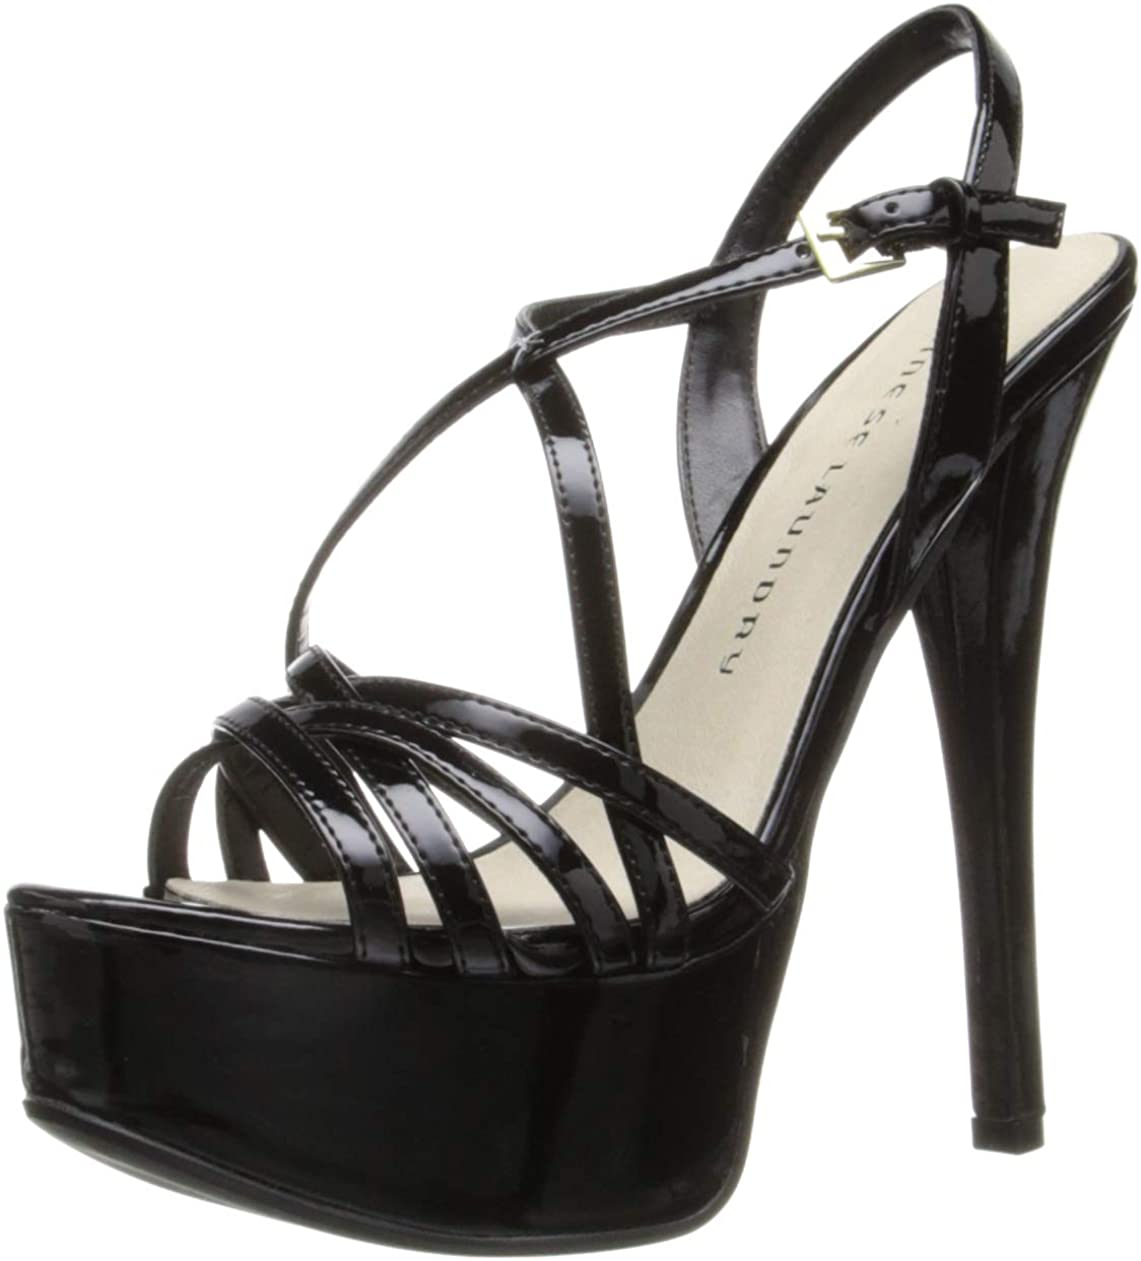 Chinese Laundry Women's Max 84% OFF Teaser Platform Sandal Dress New product